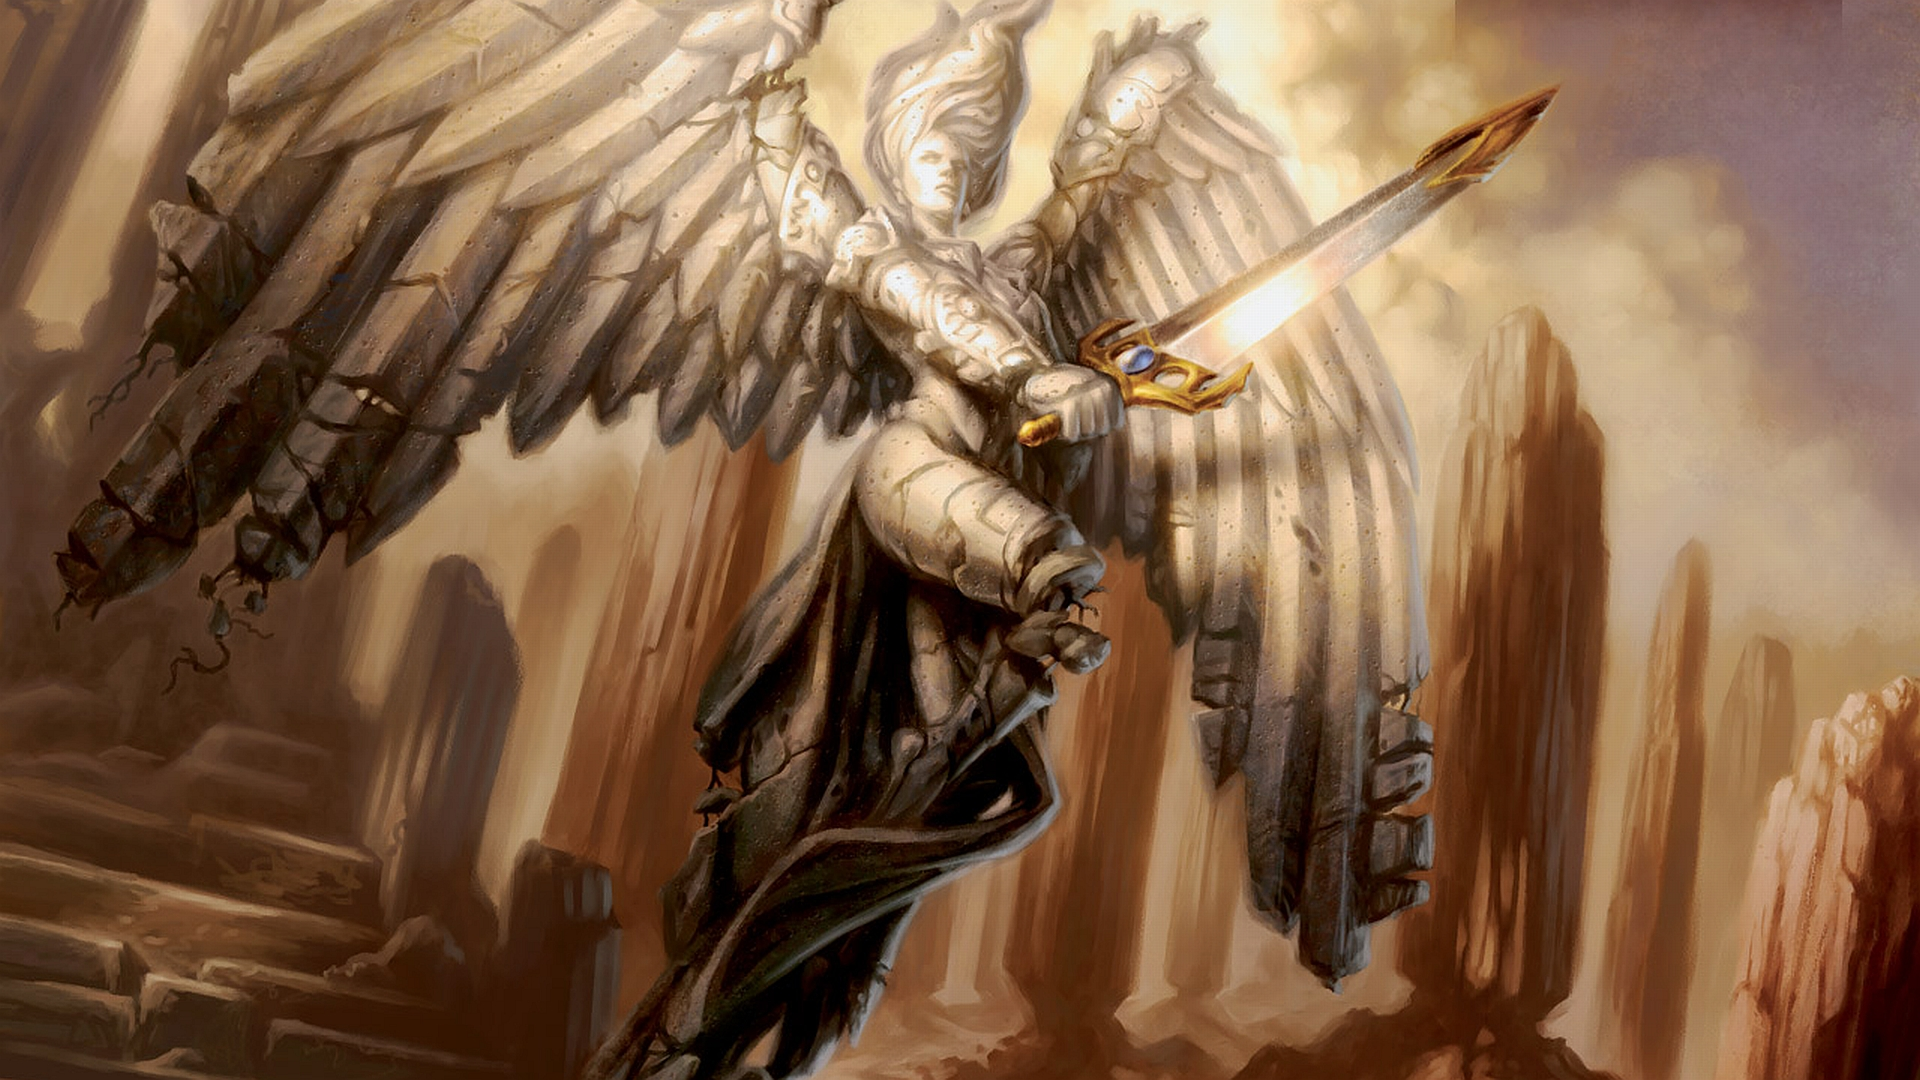 Fantasy - Magic The Gathering  - Dark - Gothic - Angel - Wings - Sword Wallpaper